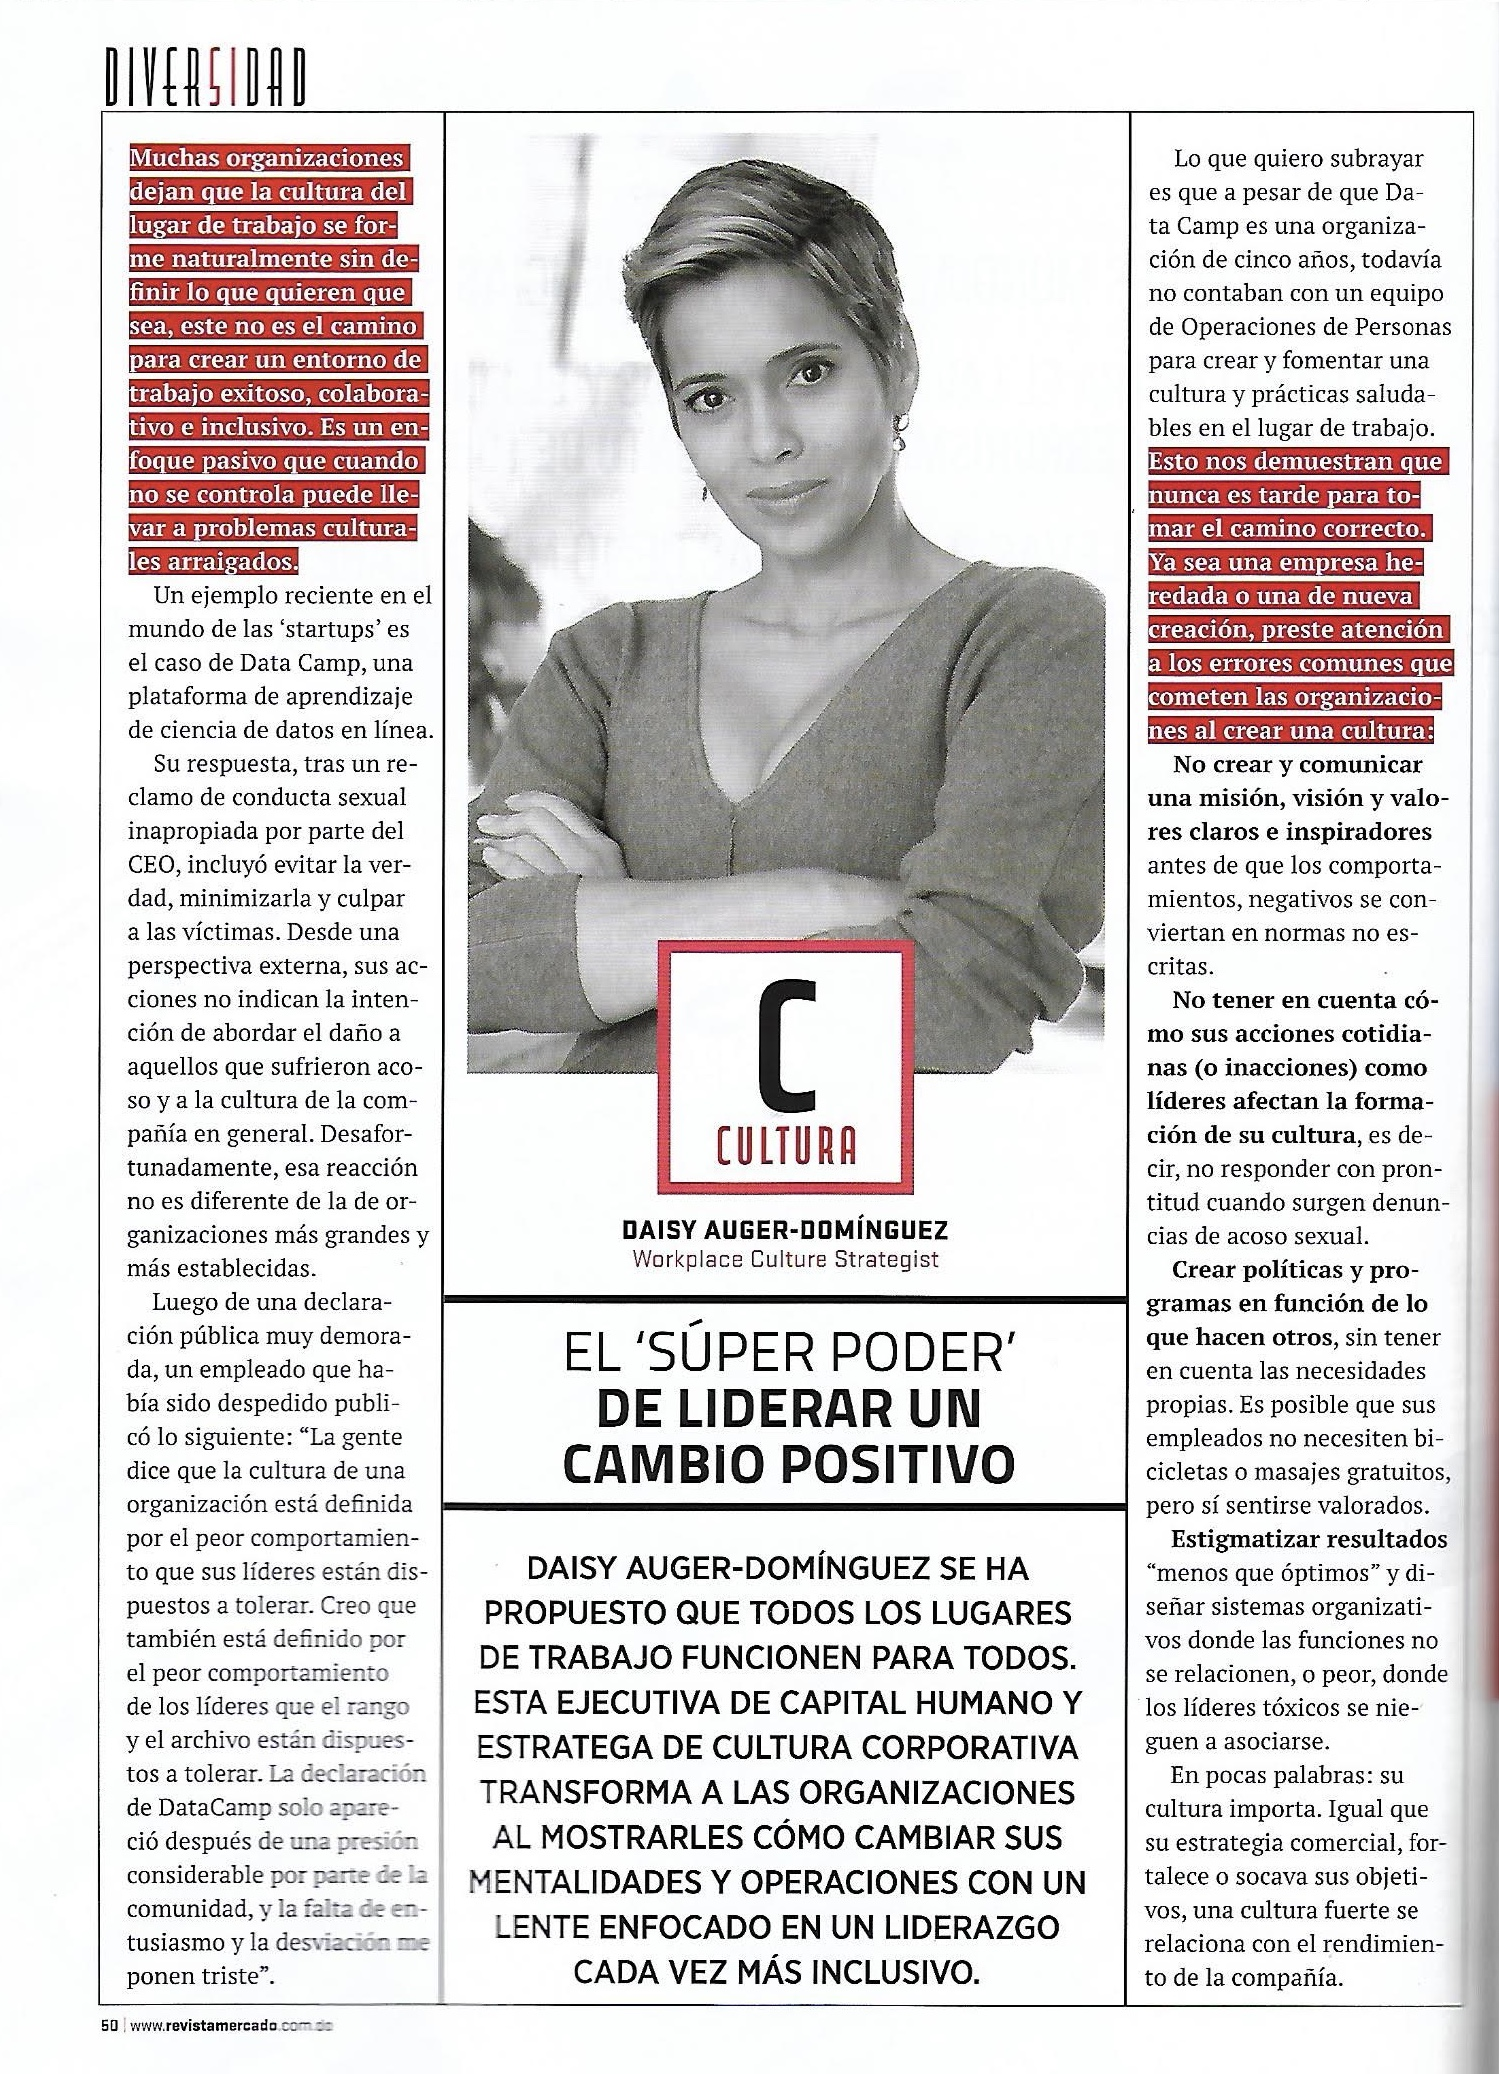 Revista Mercado Best Companies to Work For in the Dominican Republic 2019 - A strong culture correlates with performance, impacts happiness and satisfaction. This article highlights a few mistakes to avoid.